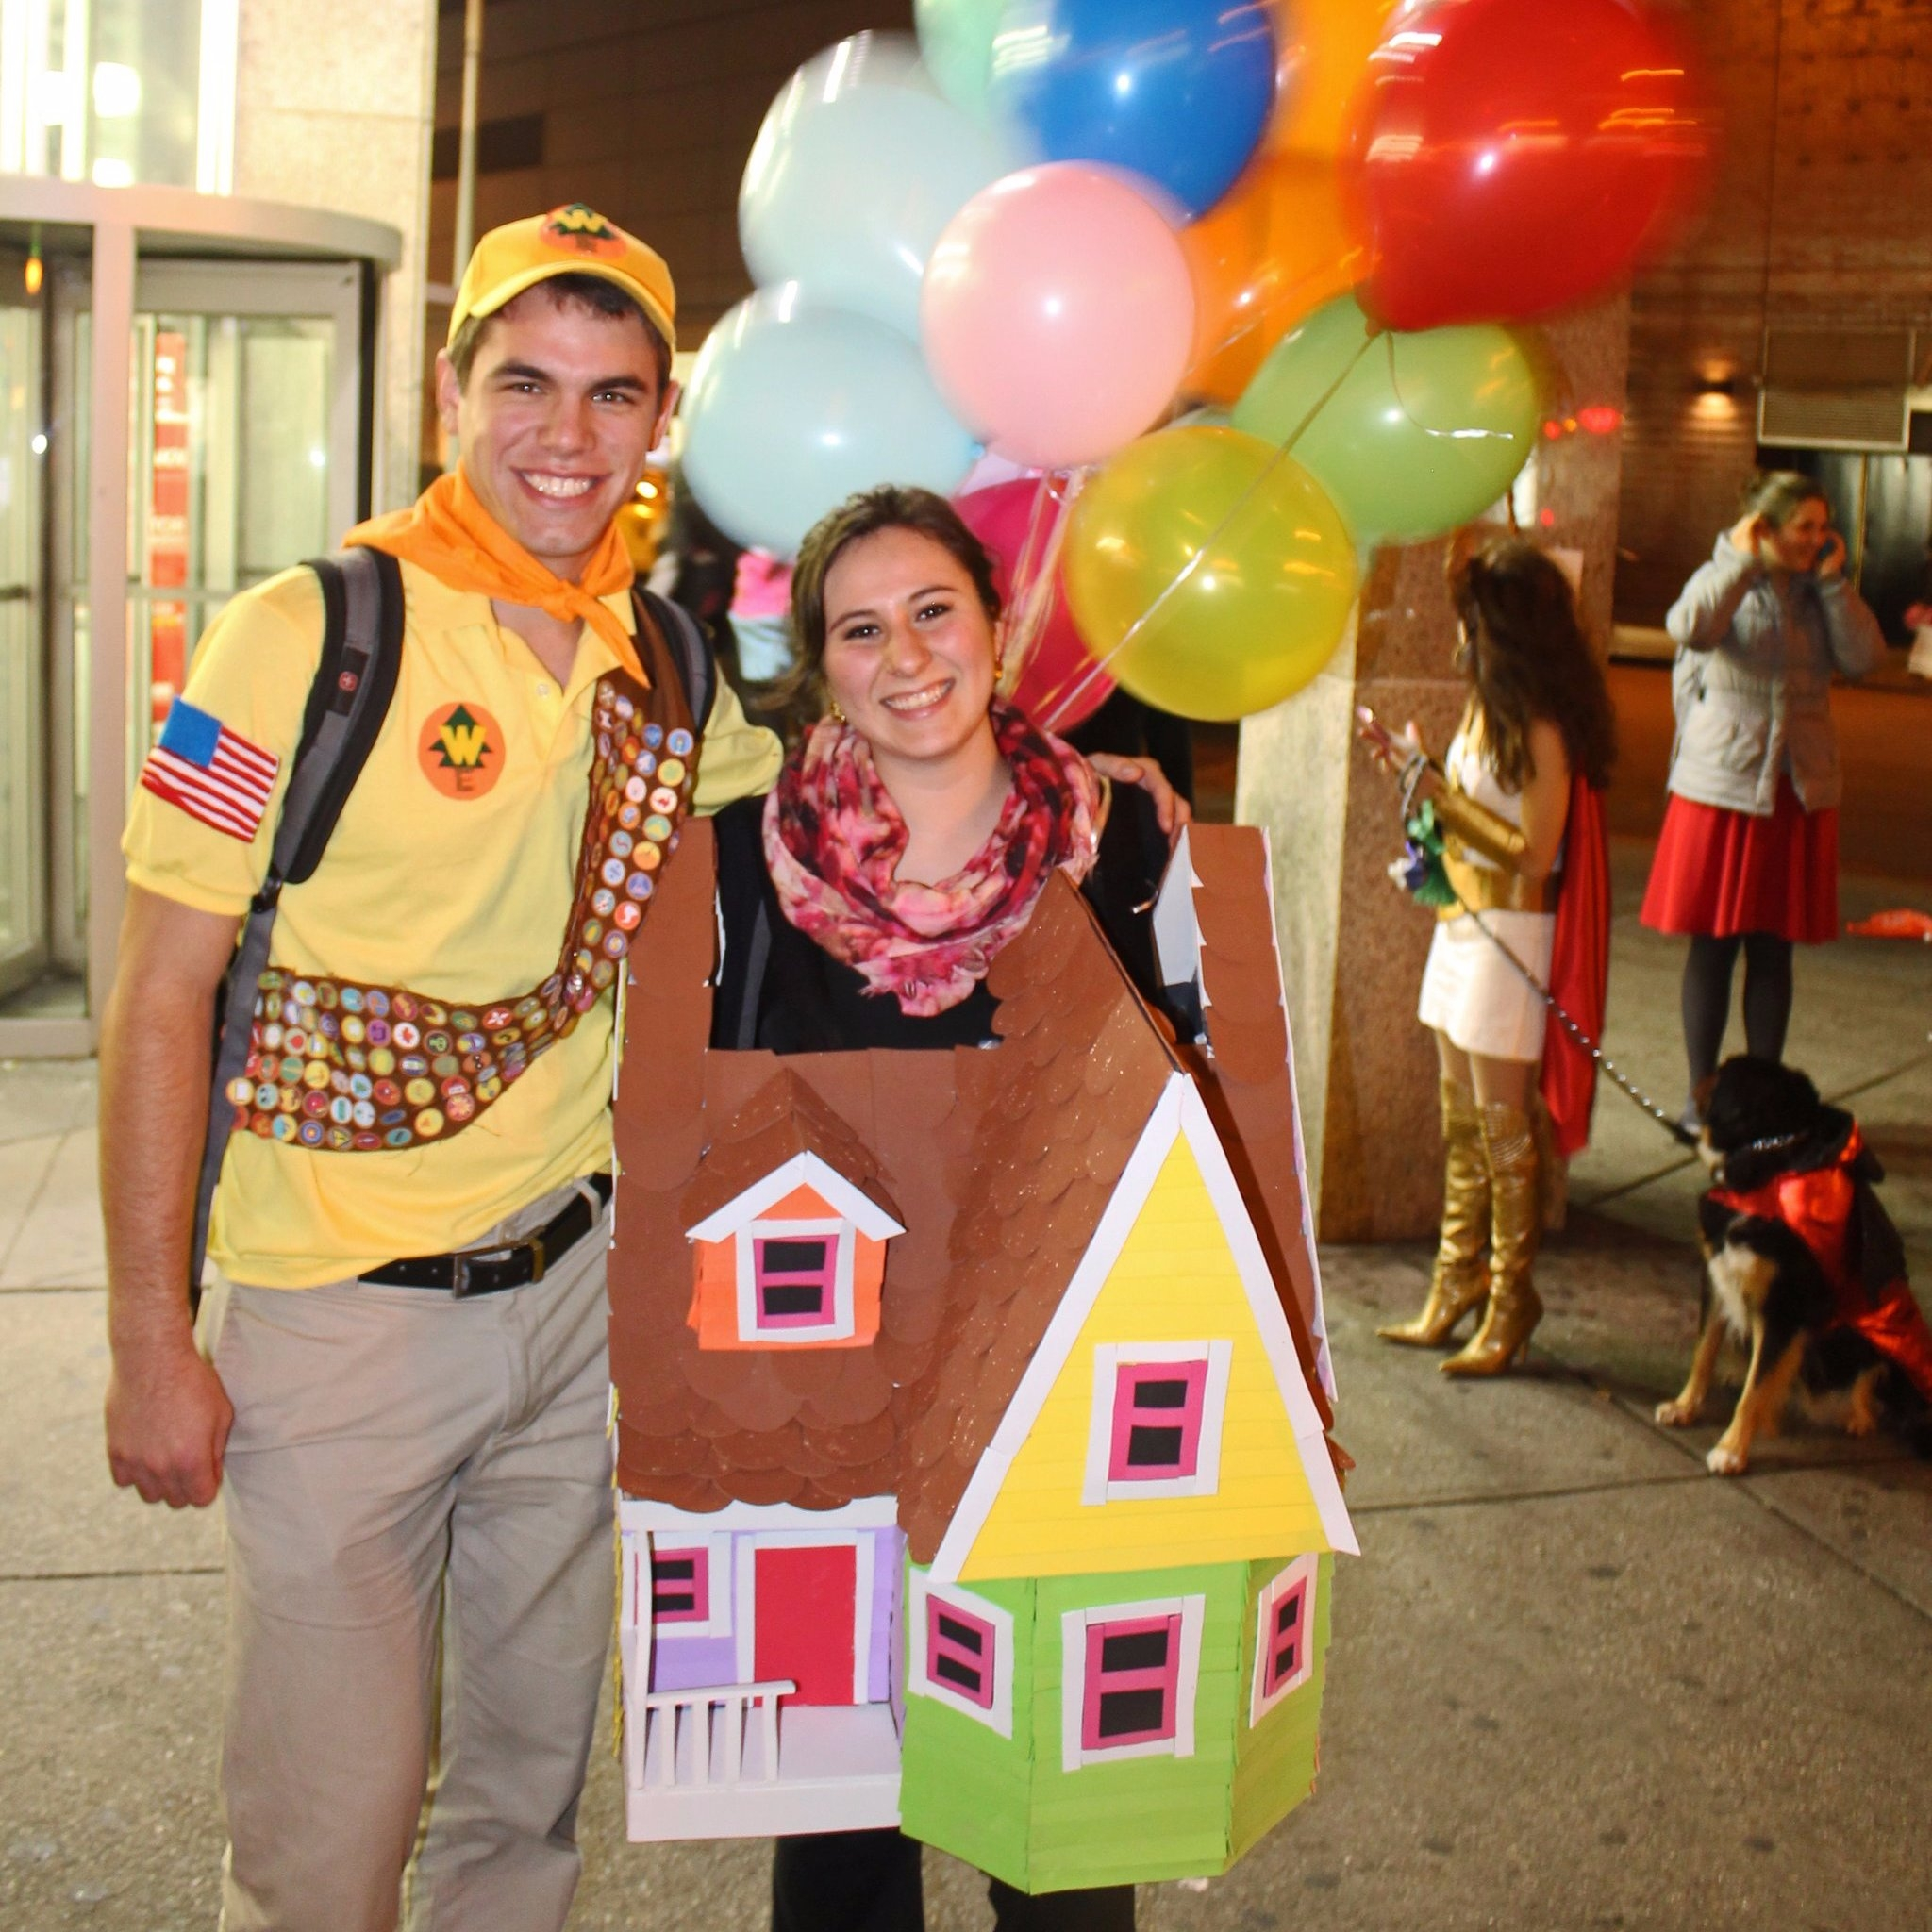 10 Famous Creative Halloween Costume Ideas For Couples cheap diy couples halloween costumes popsugar smart living 9